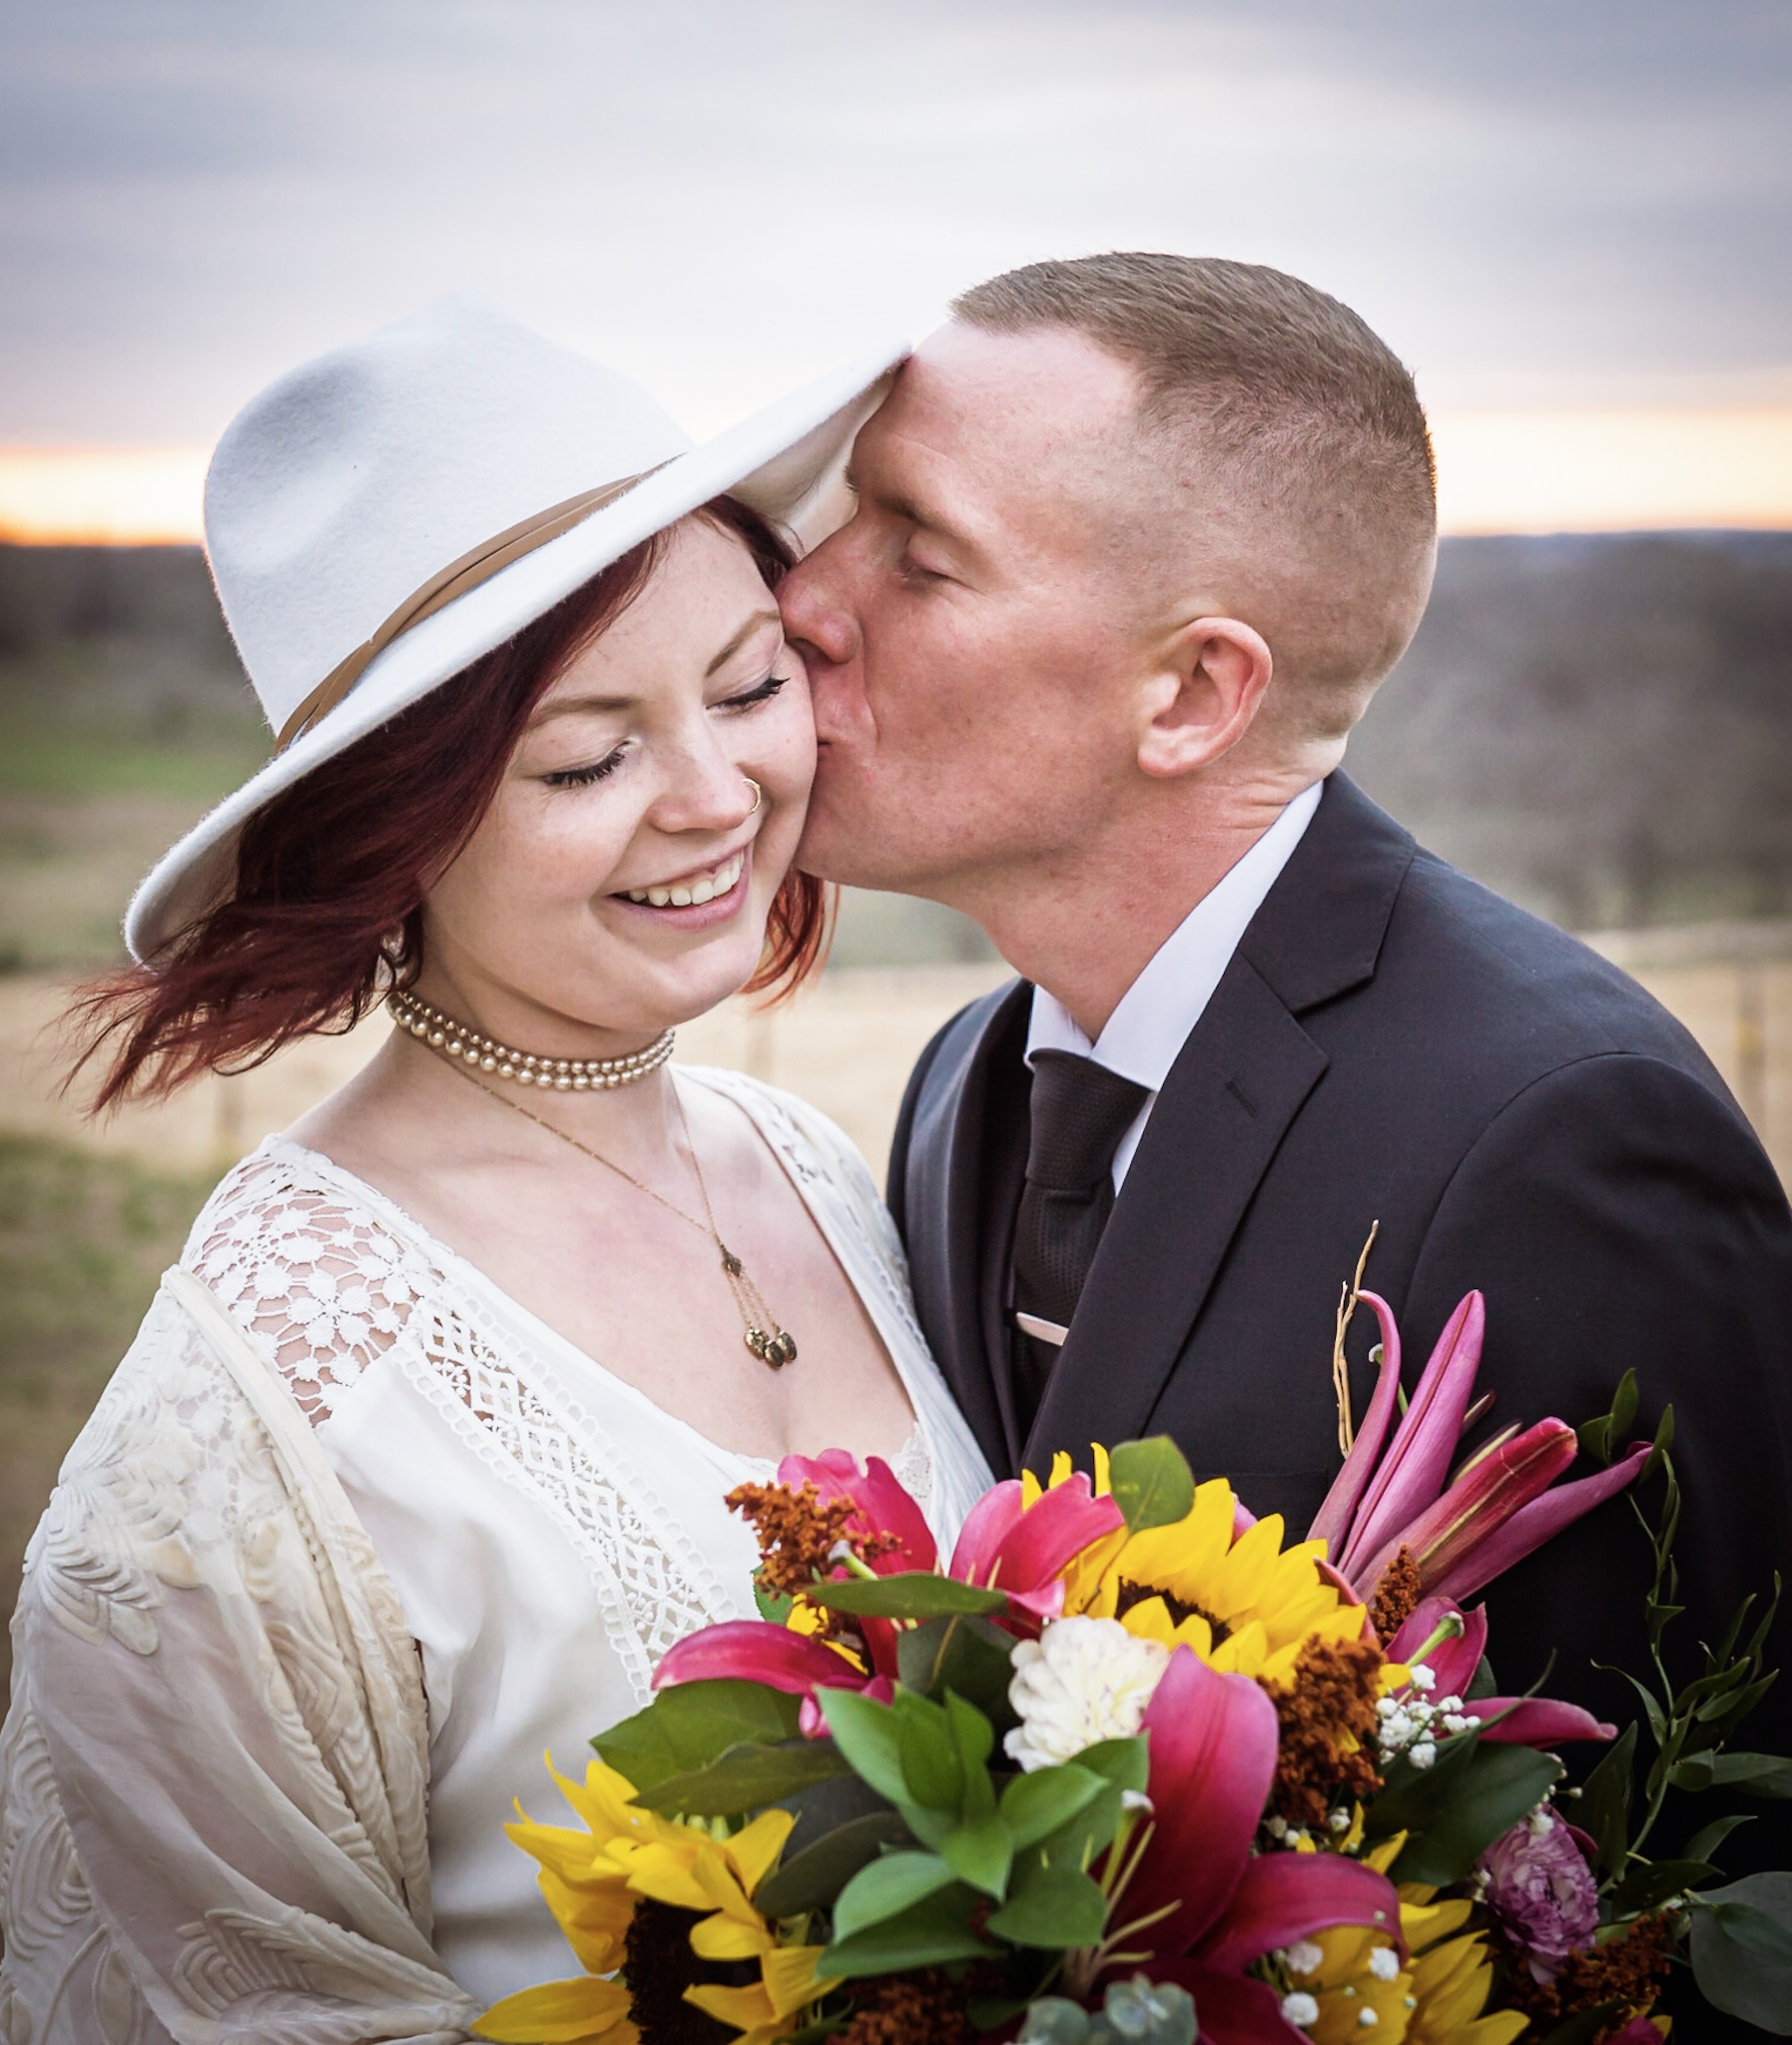 Event Photography - Couple kissing at private event in Bartlett, TX